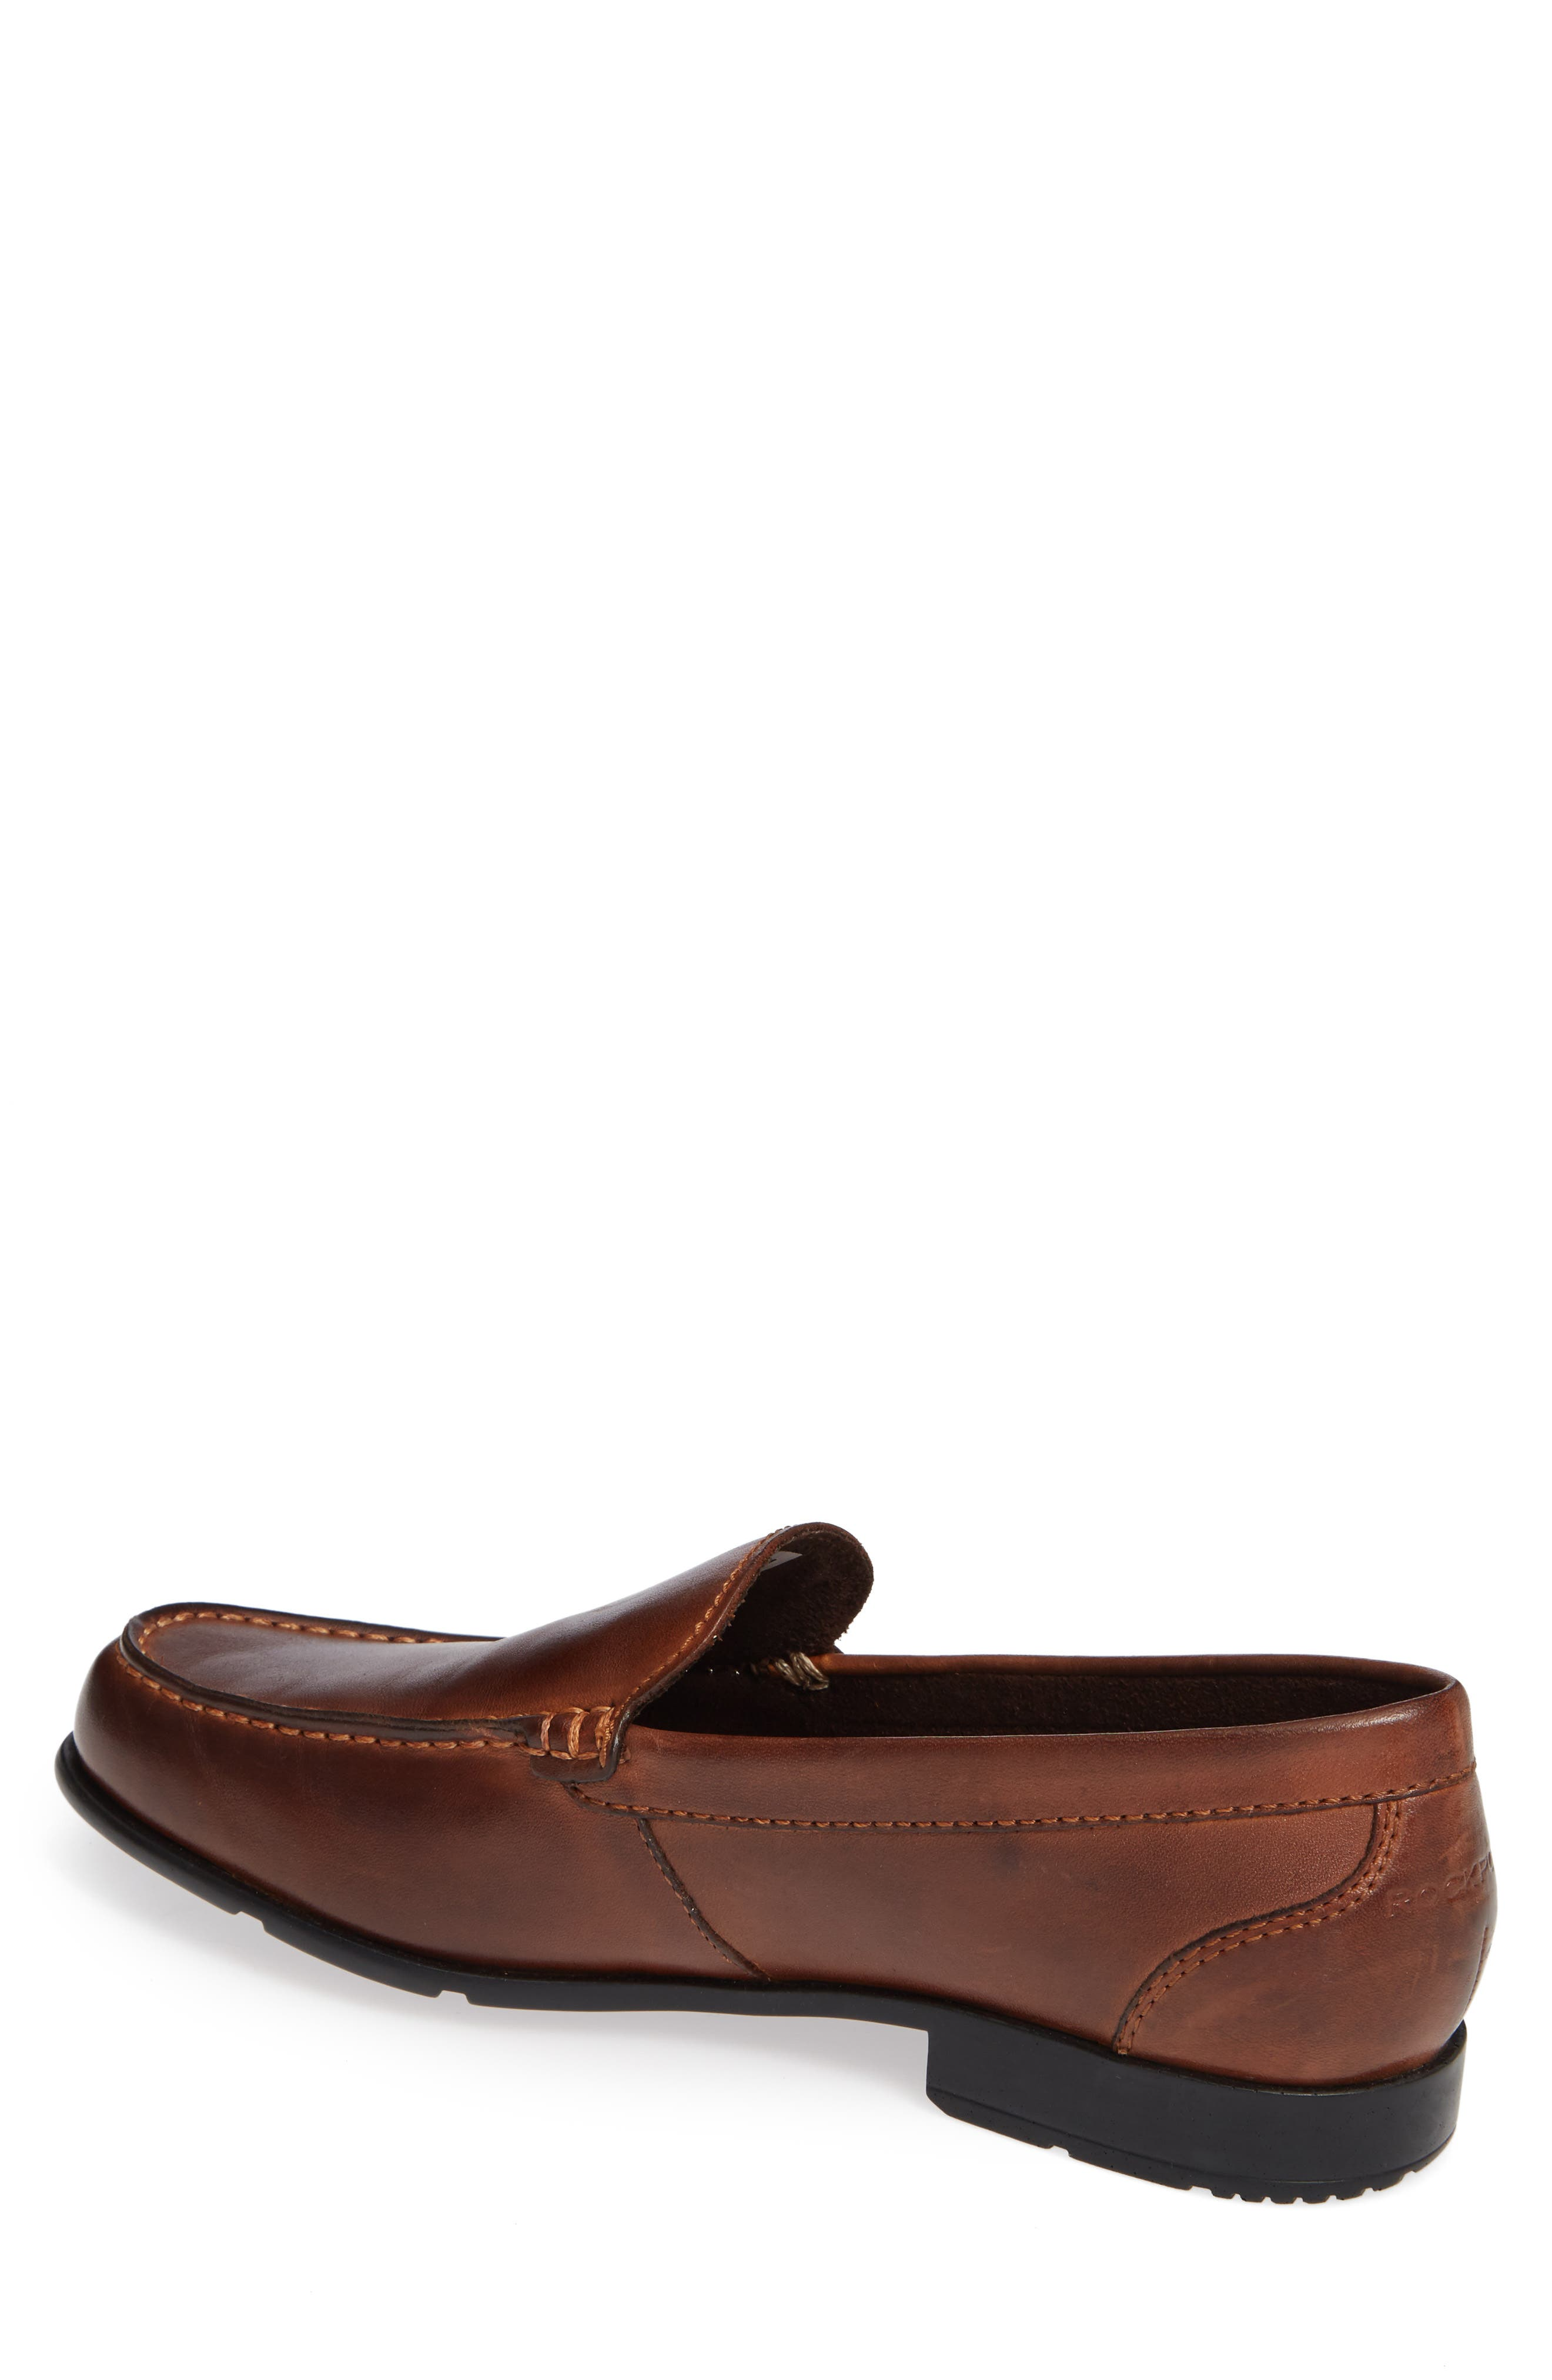 Classic Venetian Loafer,                             Alternate thumbnail 2, color,                             DARK BROWN LEATHER